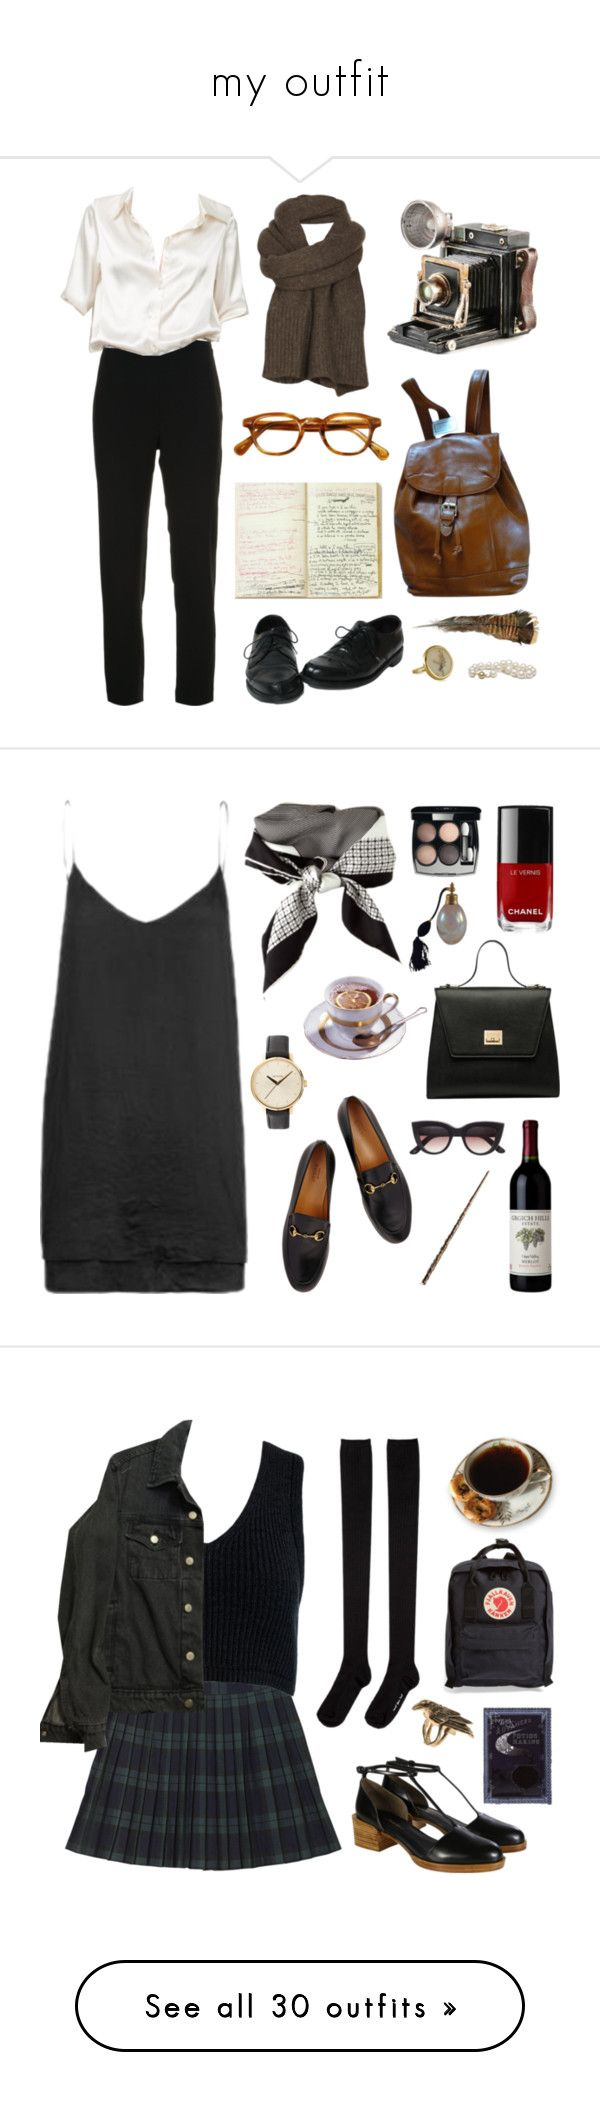 """""""my outfit"""" by your-fair-lady ❤ liked on Polyvore featuring Brandon Maxwell, AllSaints, vintage, CÉLINE, Gucci, Chanel, Nixon, Monki, Sans Souci and American Apparel"""